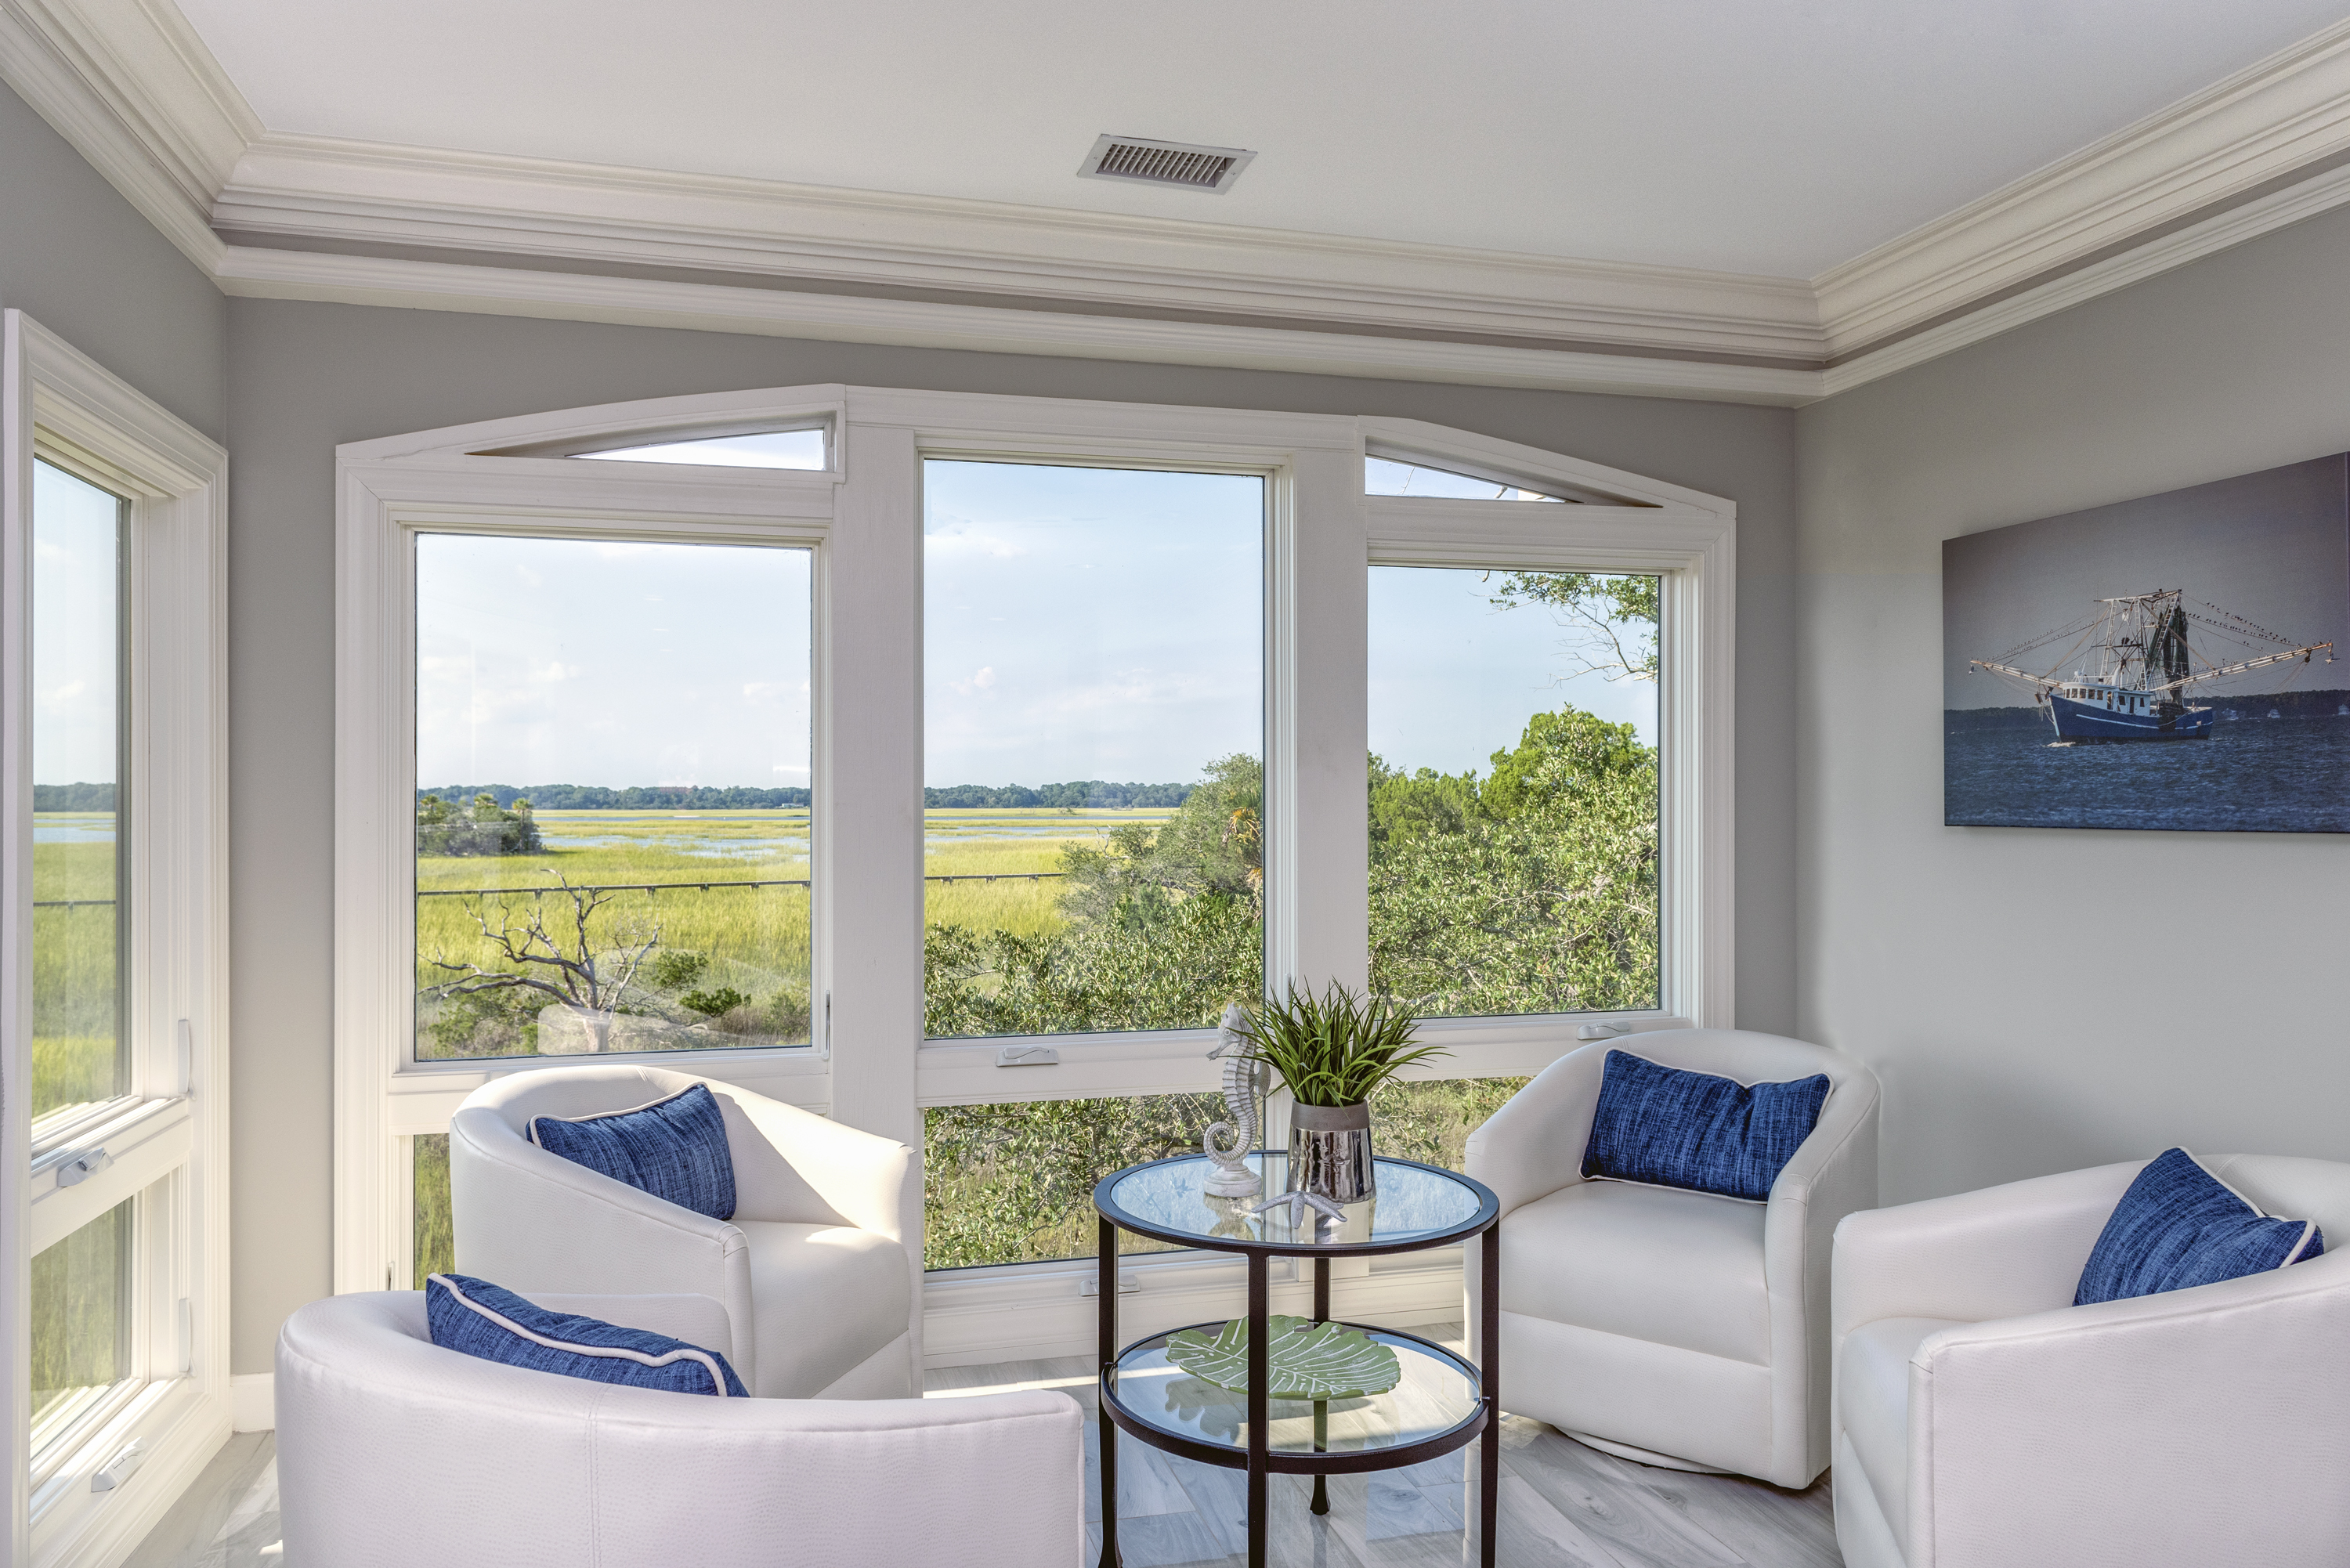 Comfortable sitting area with amazing views of marsh, boats and sunsets.